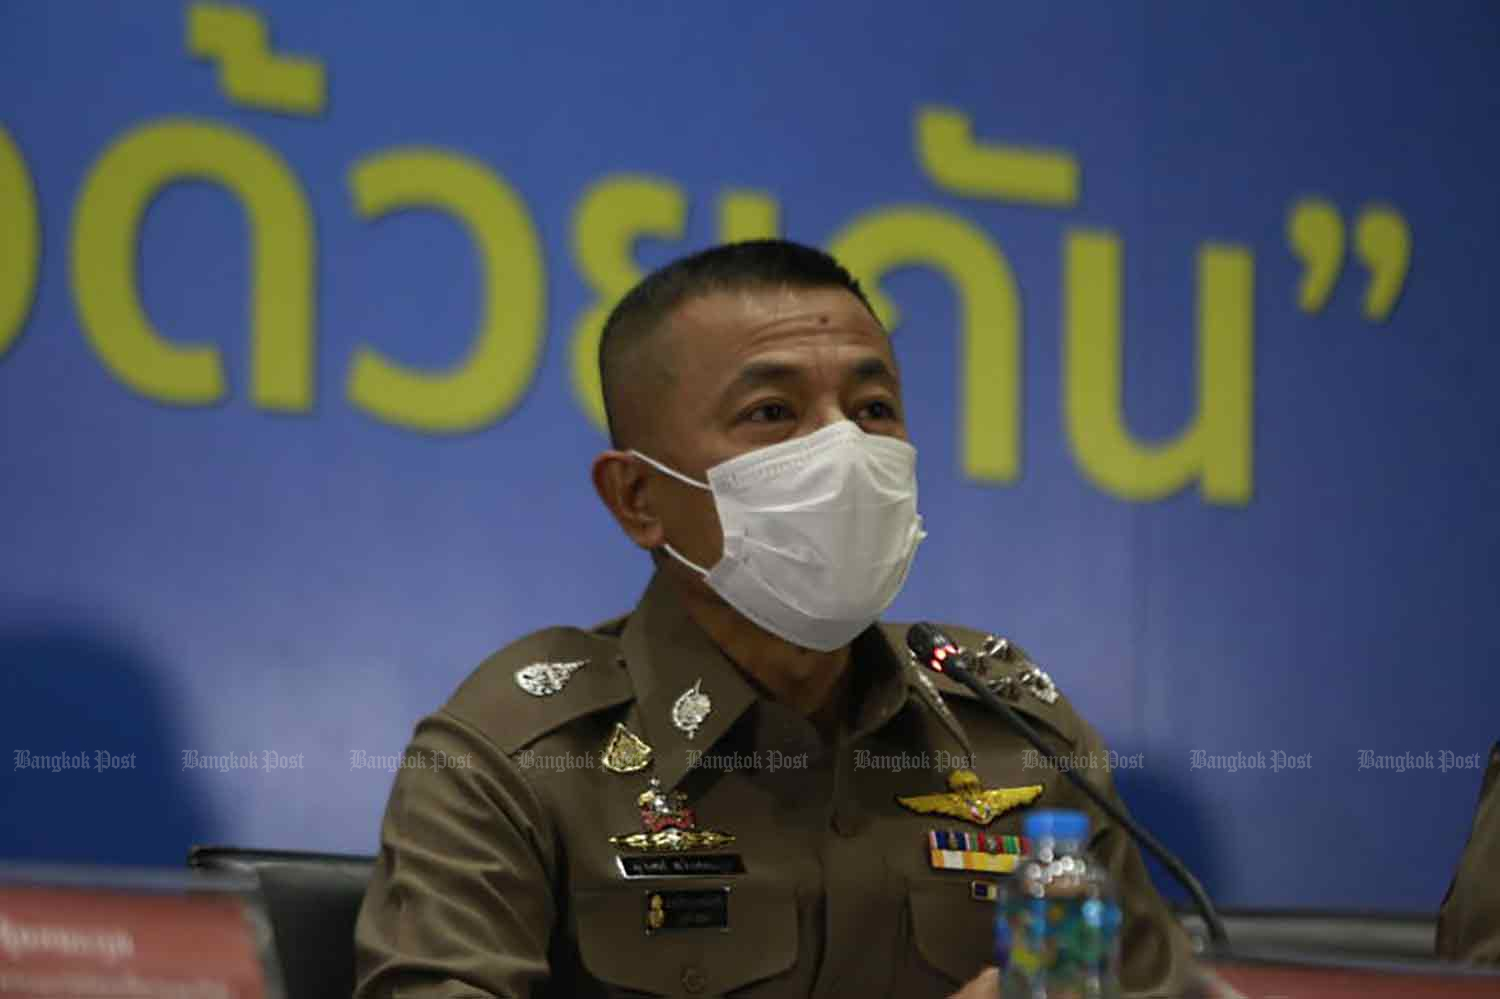 National police chief Pol Gen Suwat Jangyodsuk announces legal action against suspected embezzlers in the We Travel Together tourism subsidy scheme, at the Royal Thai Police Office in Bangkok on Wednesday. (Photo by Arnun Chonmahatrakool)